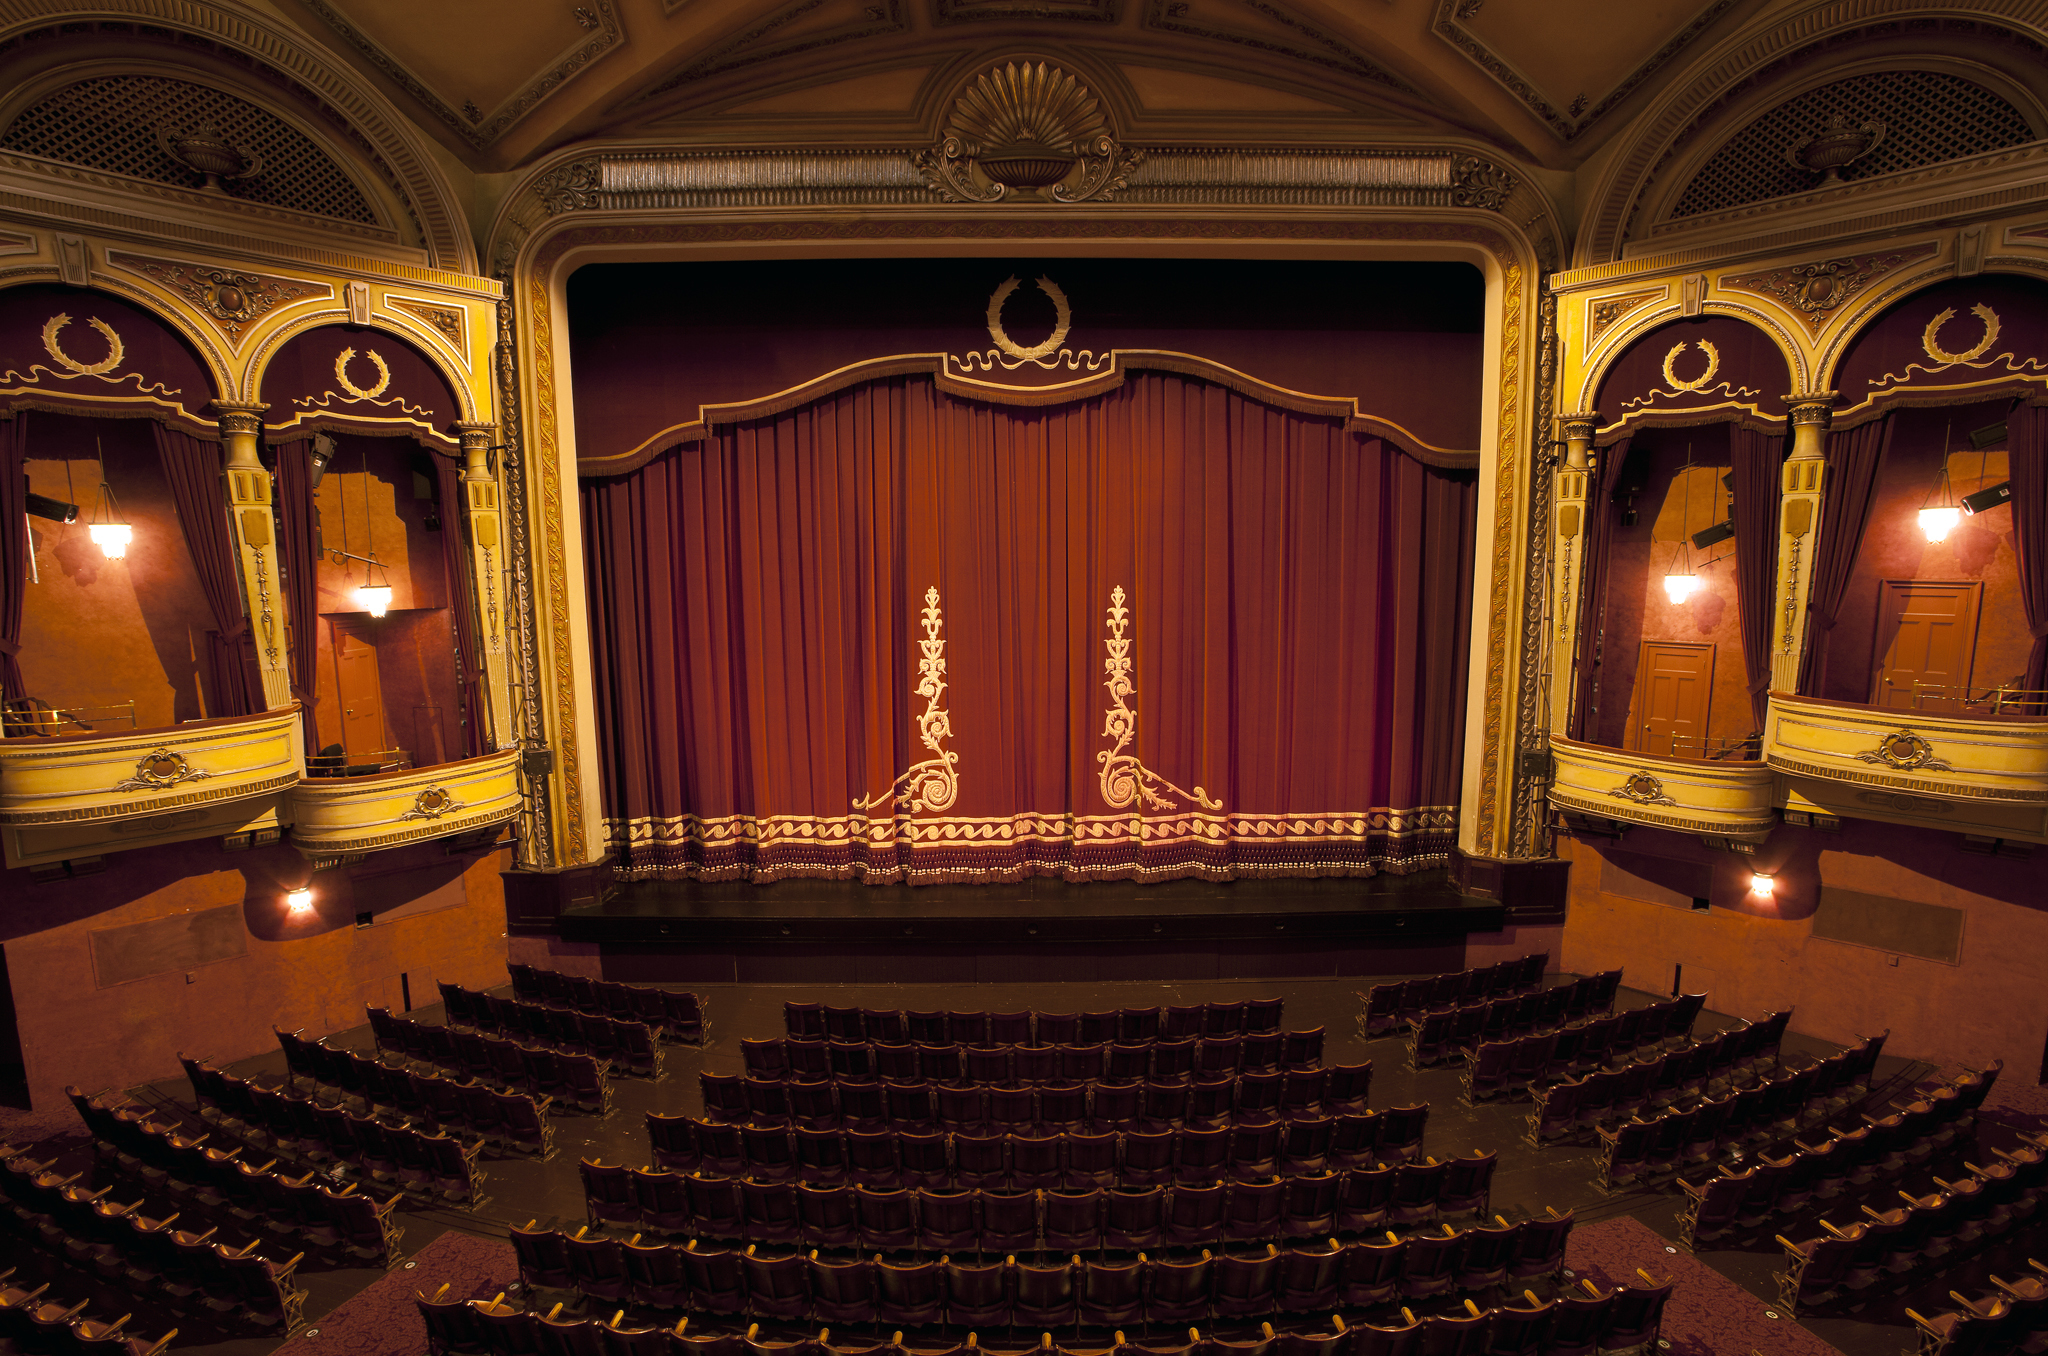 Festival Theatre, Edinburgh